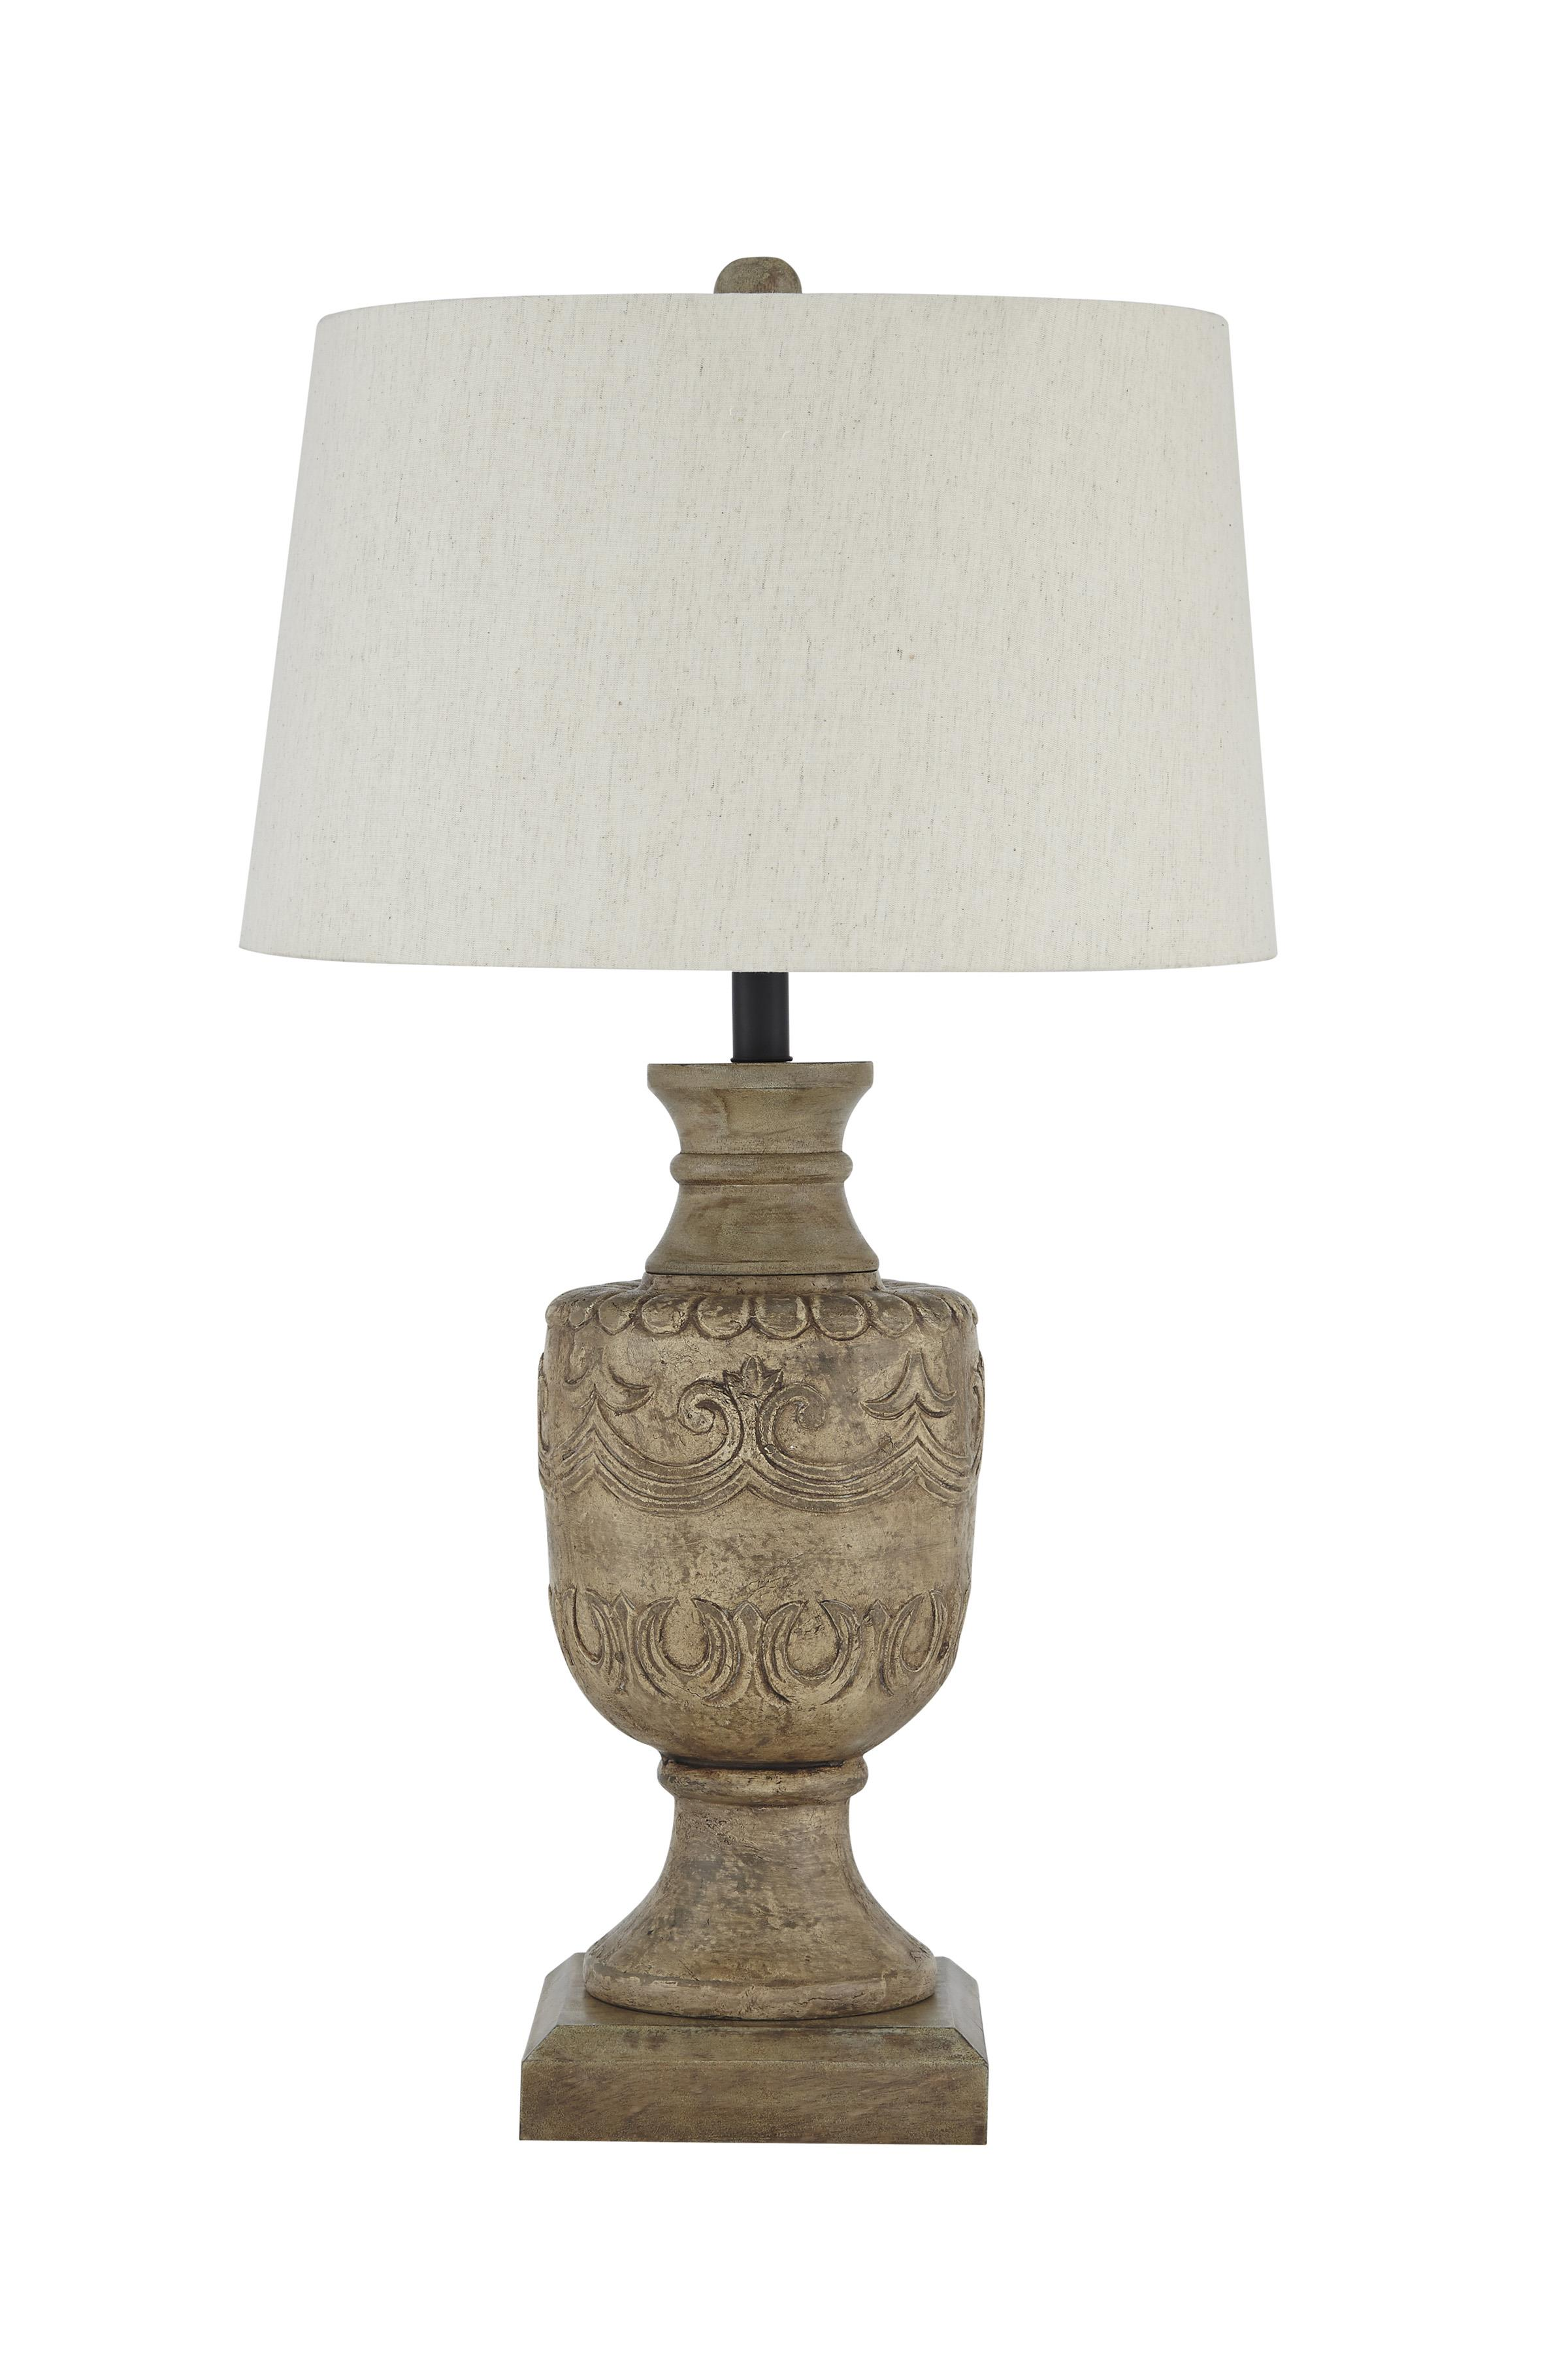 Signature Design by Ashley Lamps - Vintage Style Shobana Natural Table Lamp - Item Number: L235474